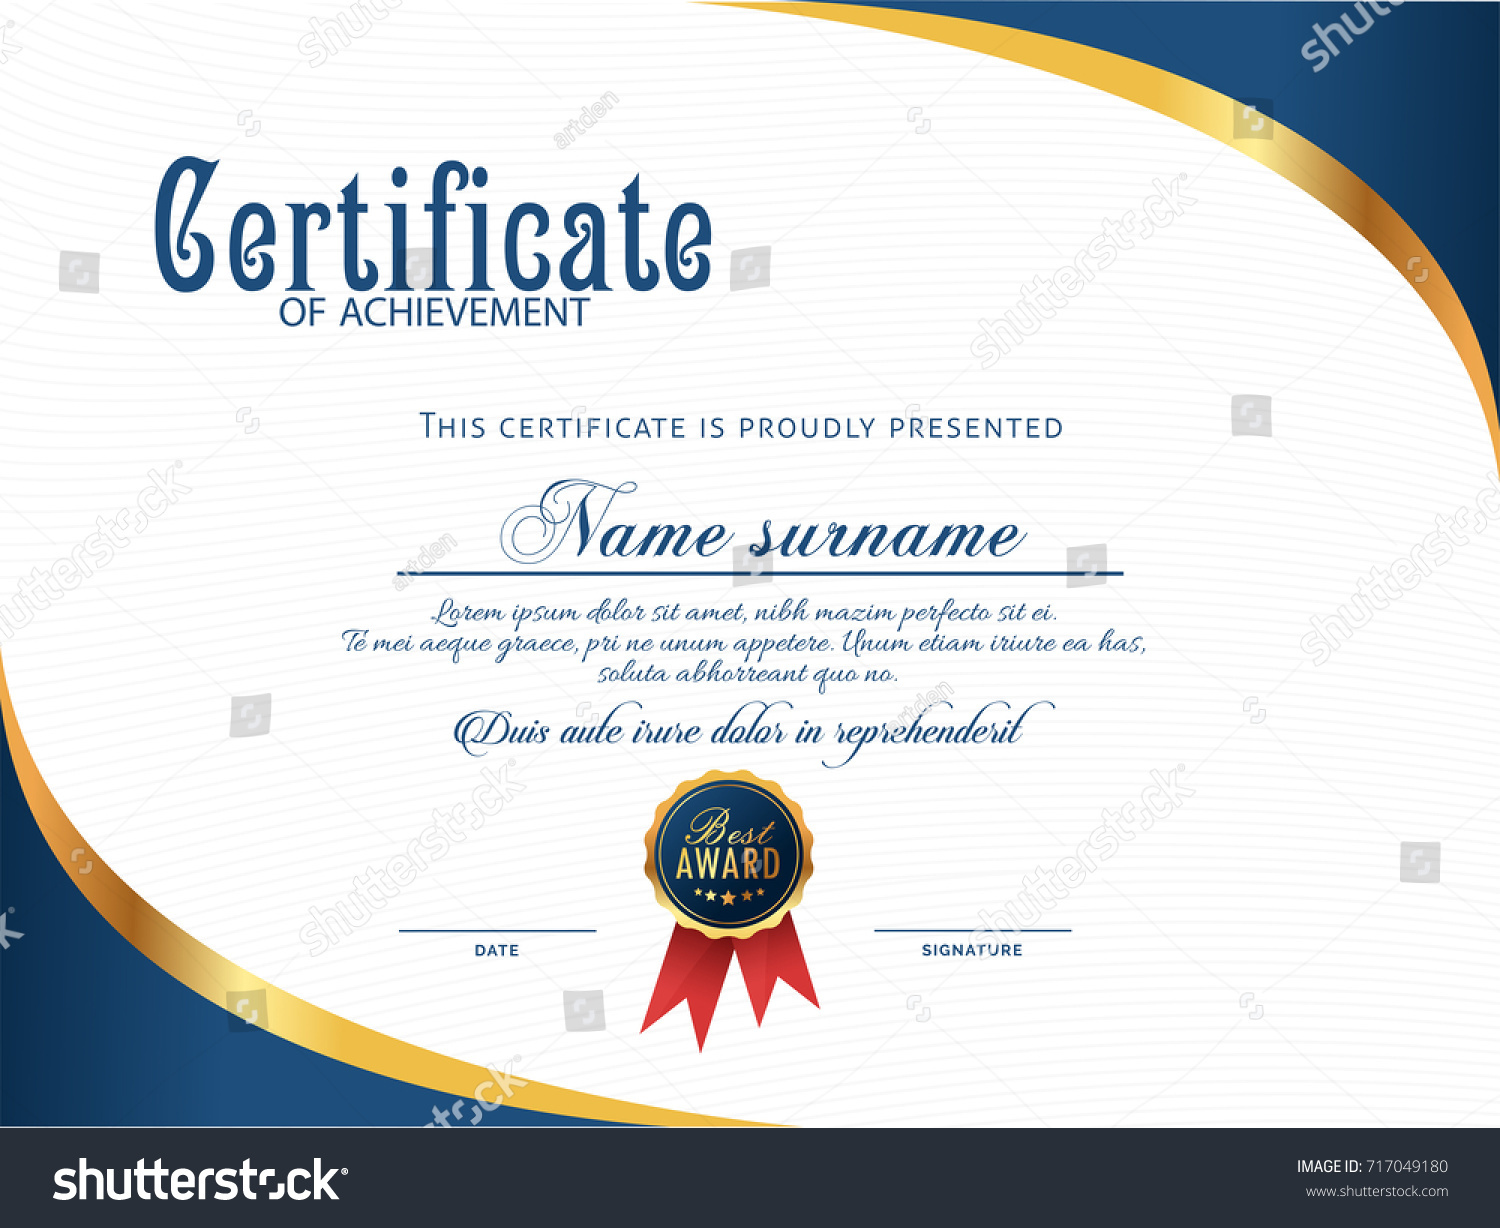 Certificate design templates gallery templates example free download certificate design templates gallery templates example free download certificate design templates images templates example free download xflitez Gallery